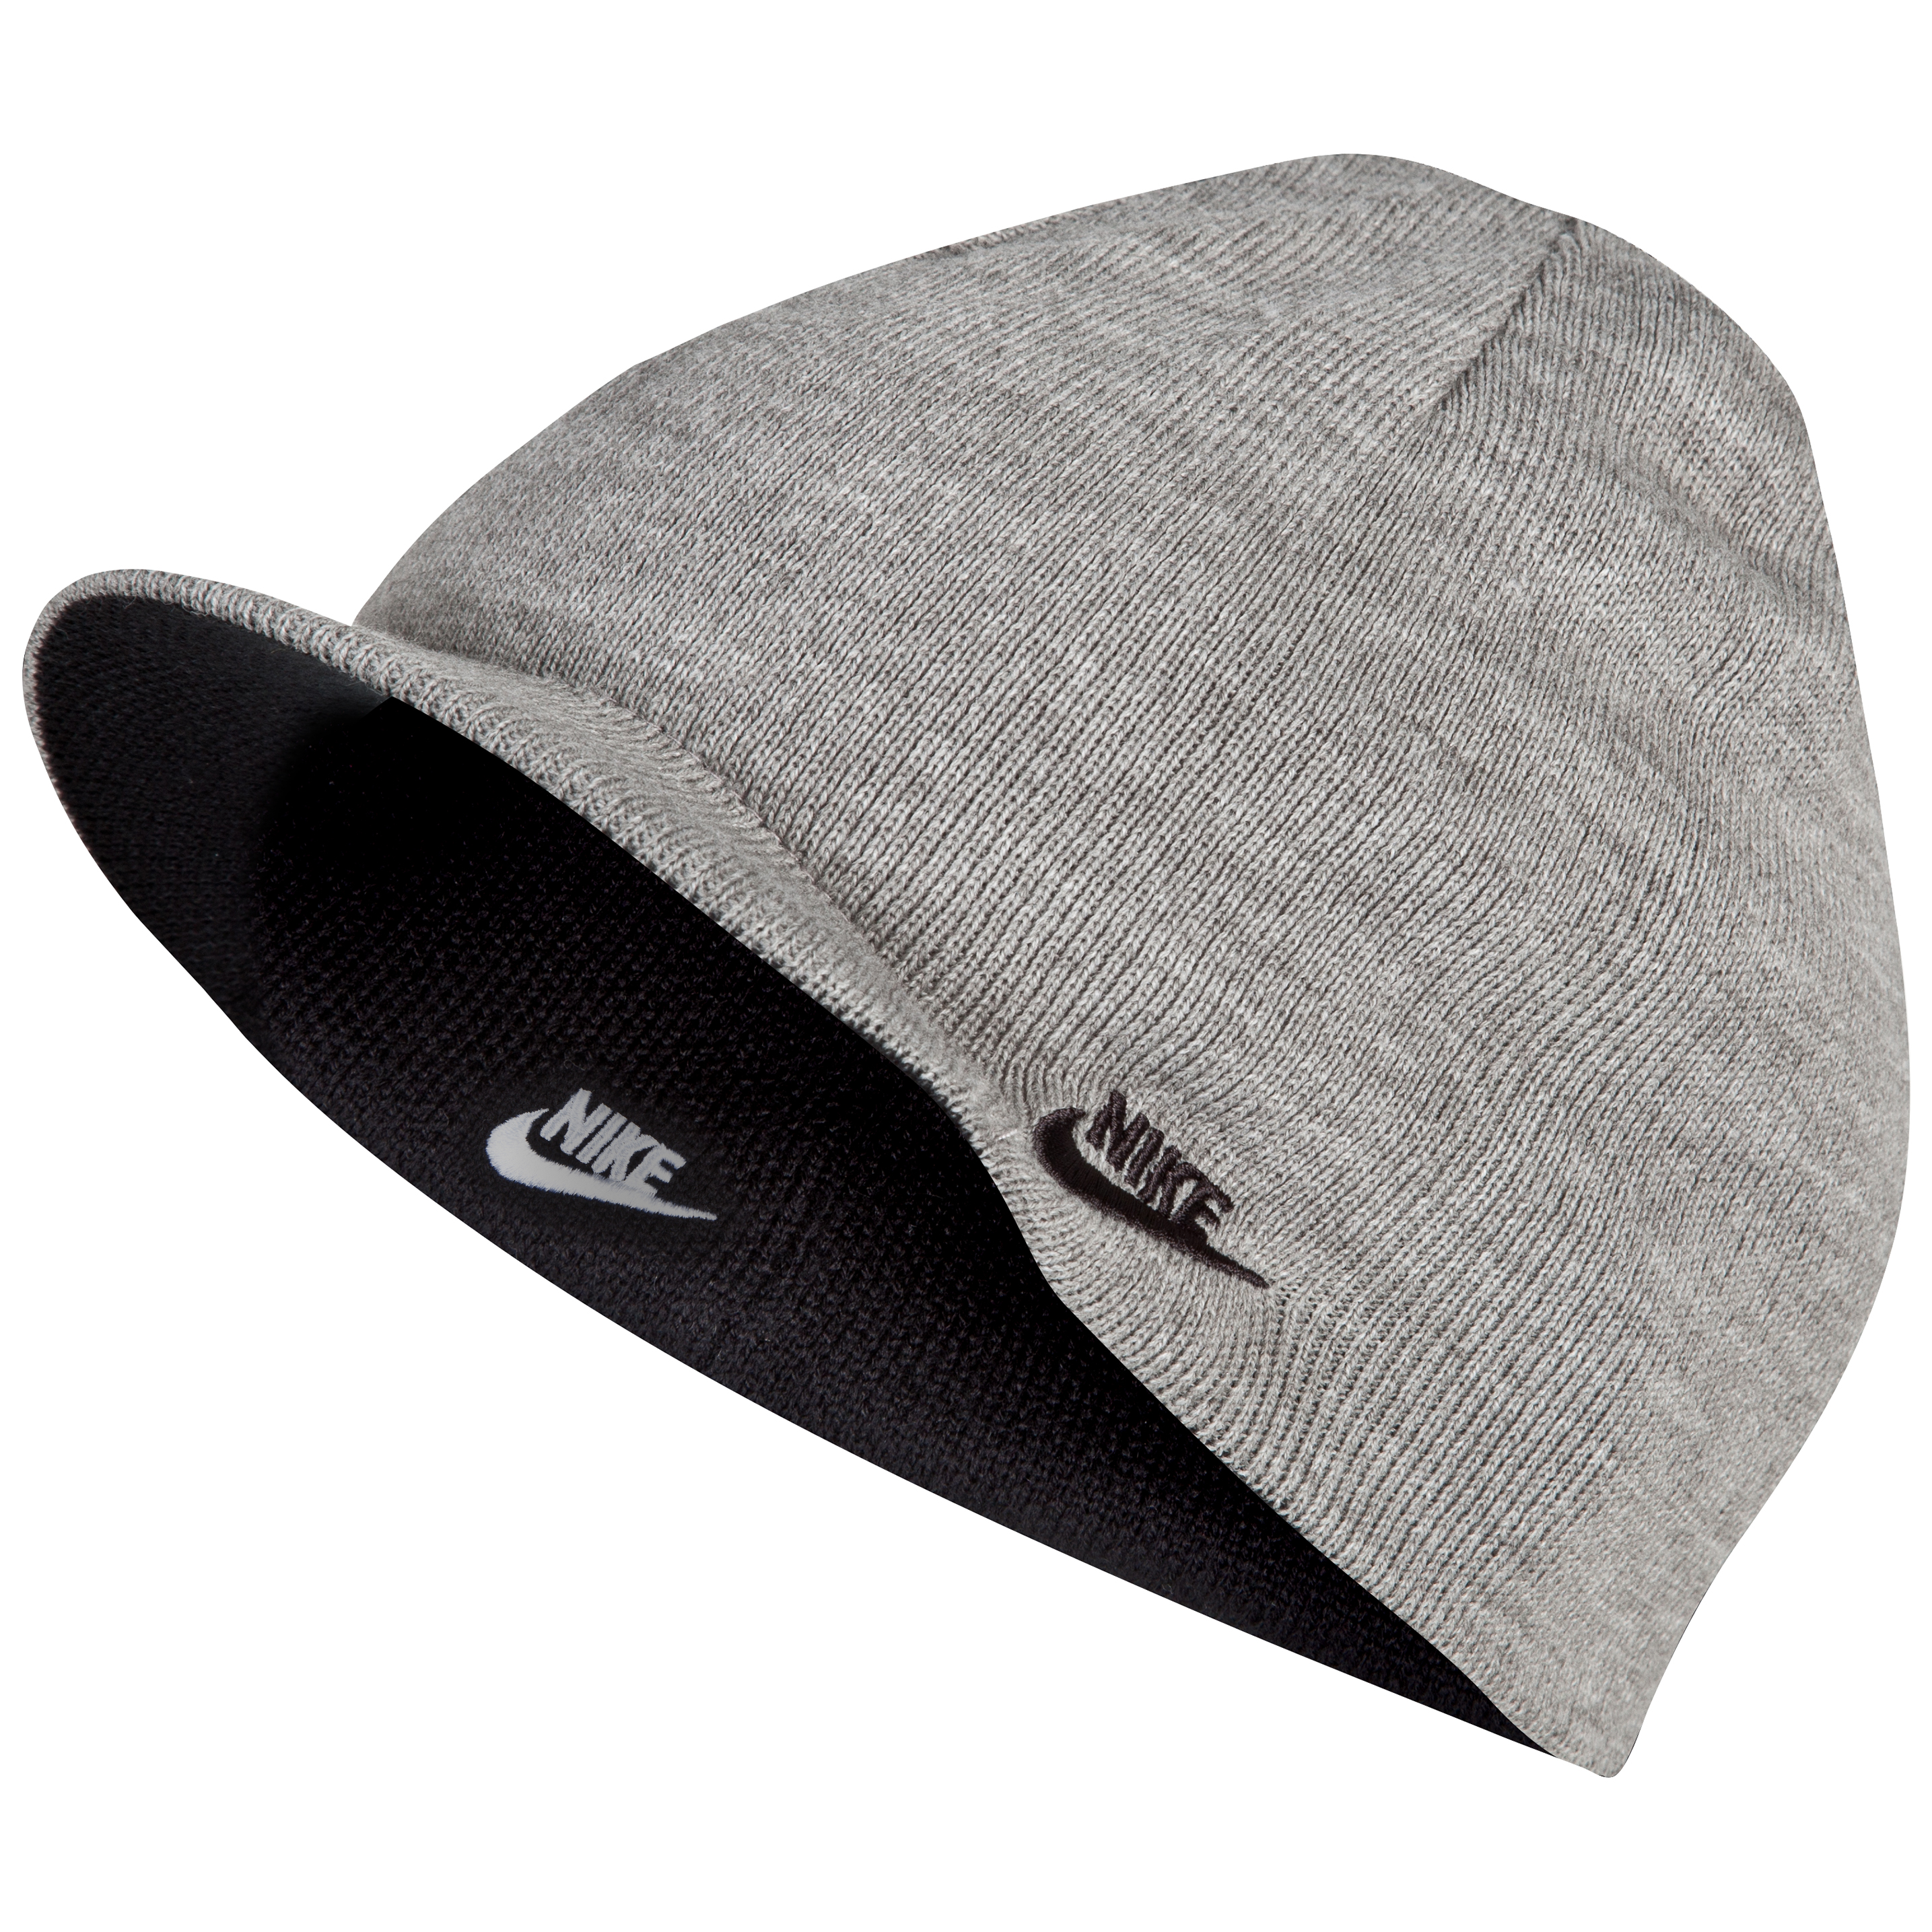 Nike Peaked Futura Beanie - Black/Dark Grey Heather/White